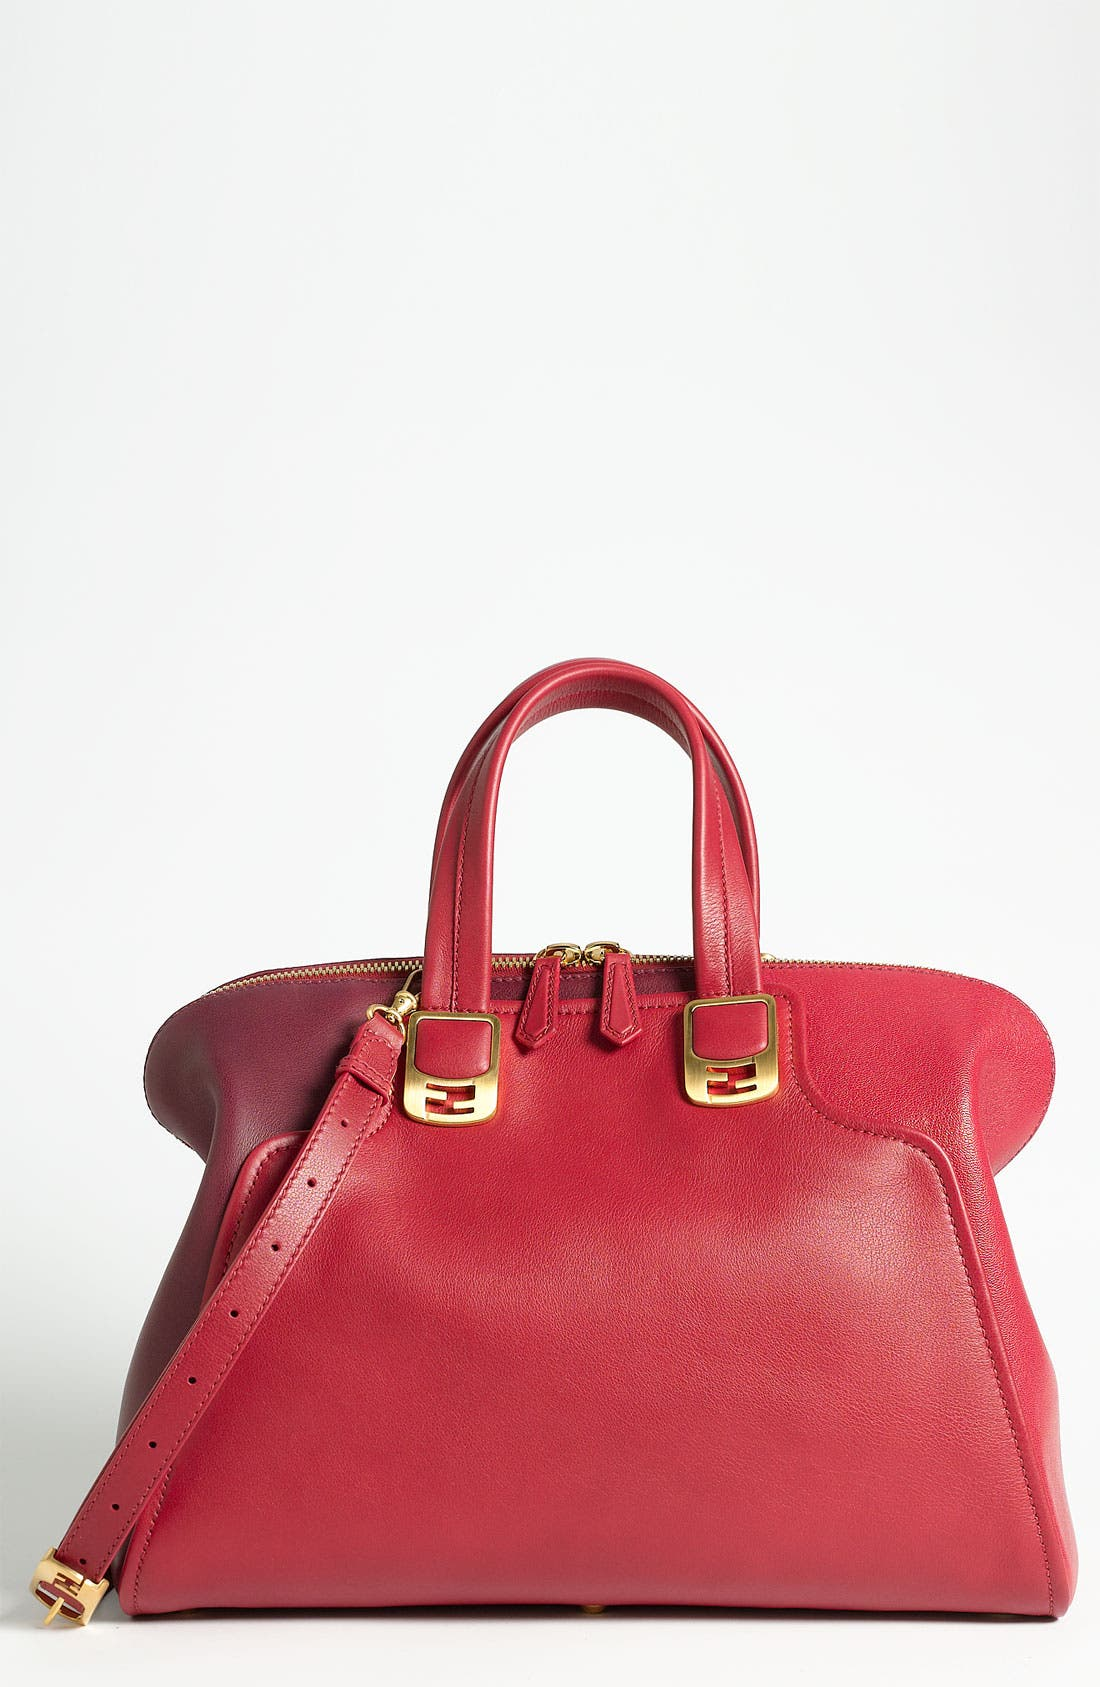 Alternate Image 1 Selected - Fendi 'Chameleon Colorblock' Leather Tote